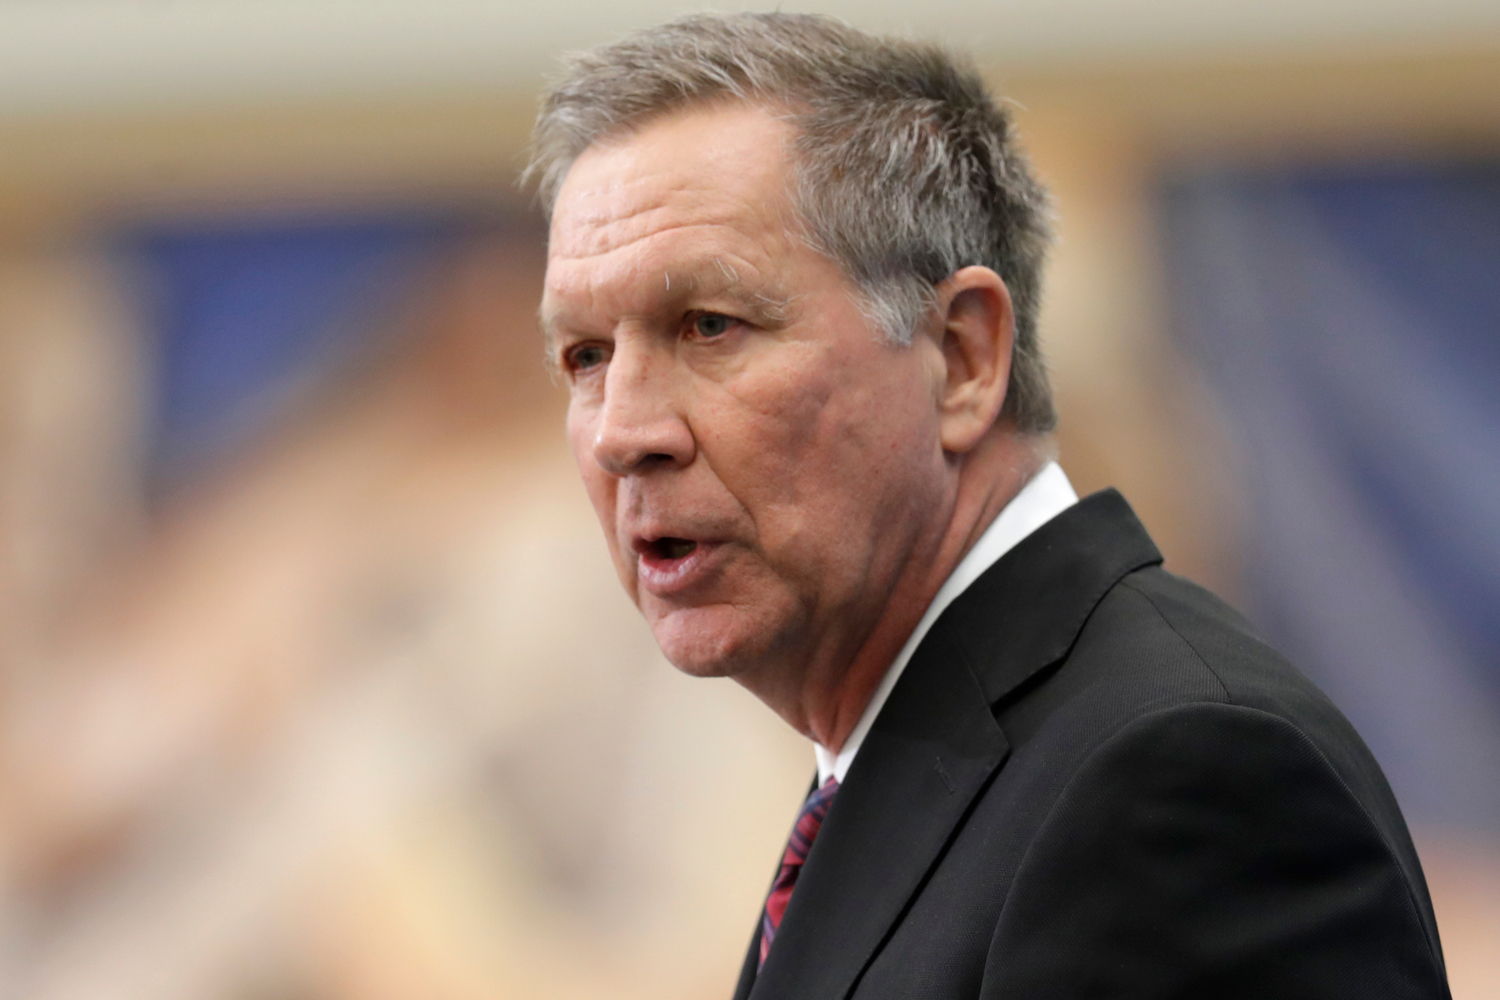 Never Trump? Never Mind. John Kasich Concedes It's Trump's Party Now